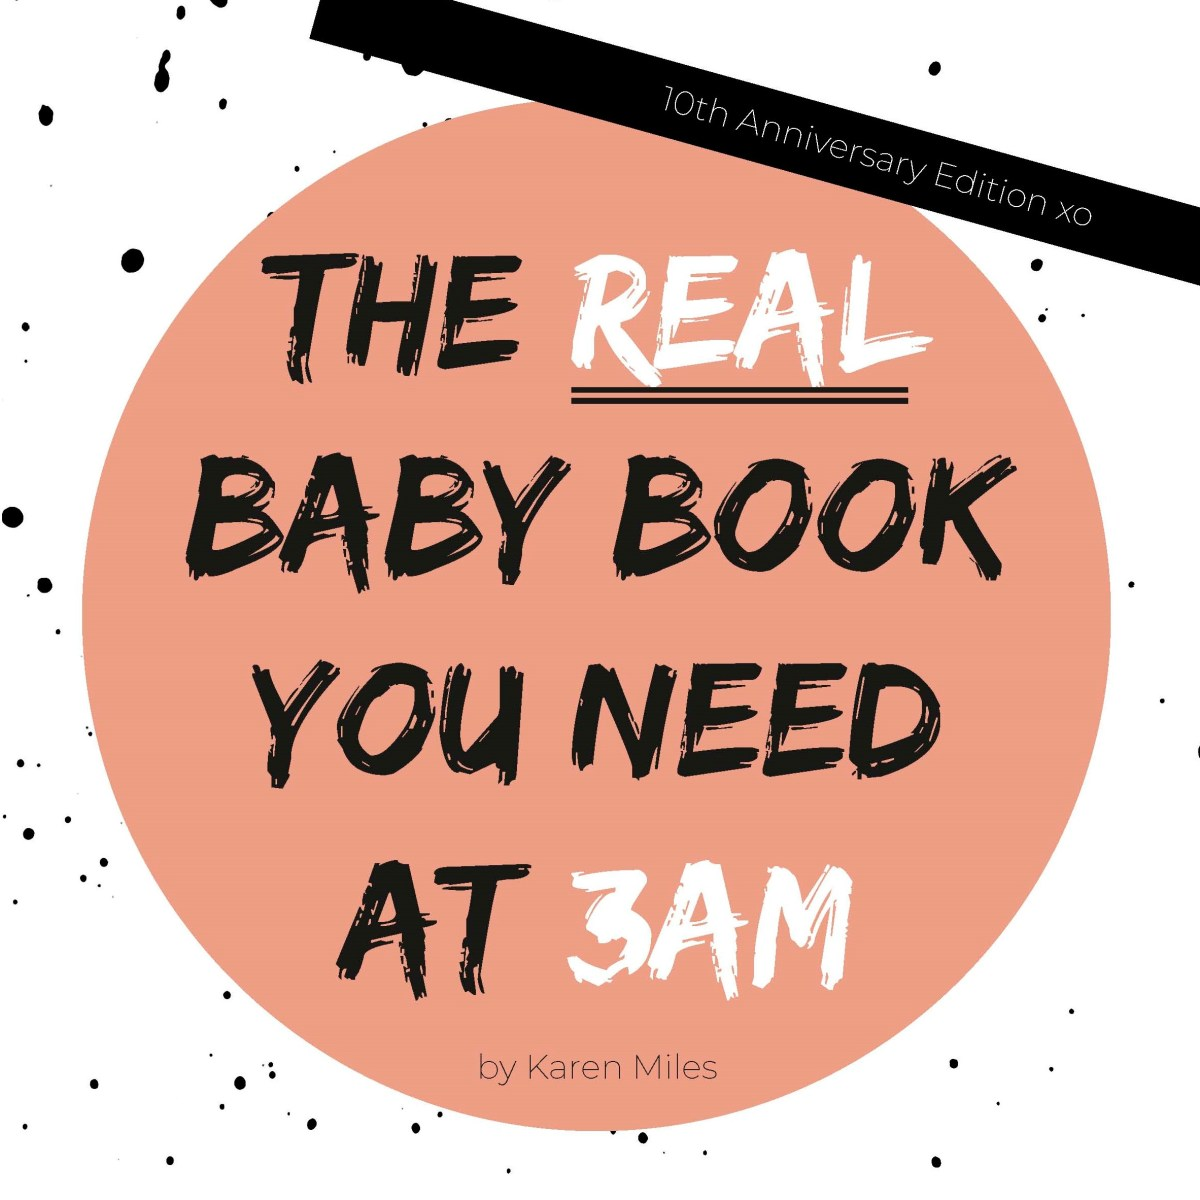 THE REAL BABY BOOK